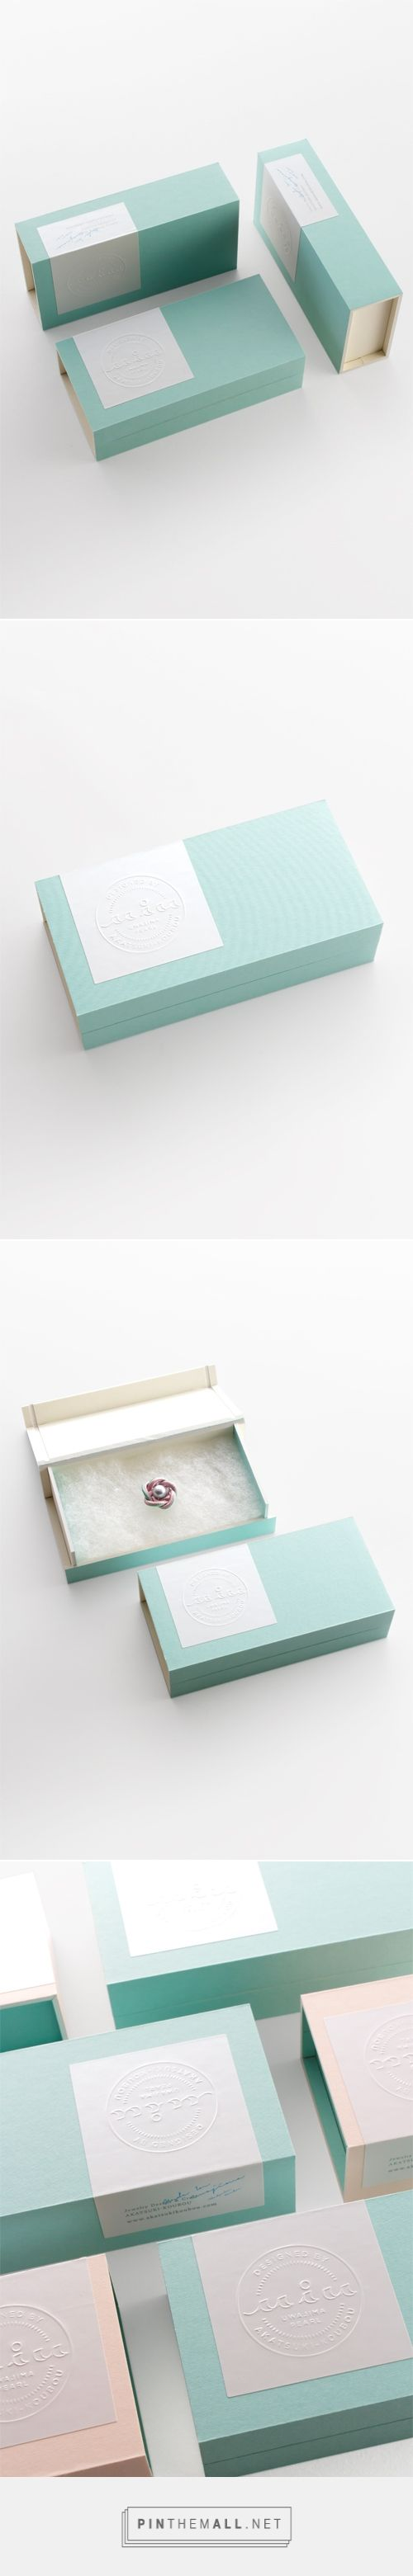 miu via Grand Deluxe【愛媛松山/デザイン】curated by Packaging Diva PD. lovely jewelry packaging.